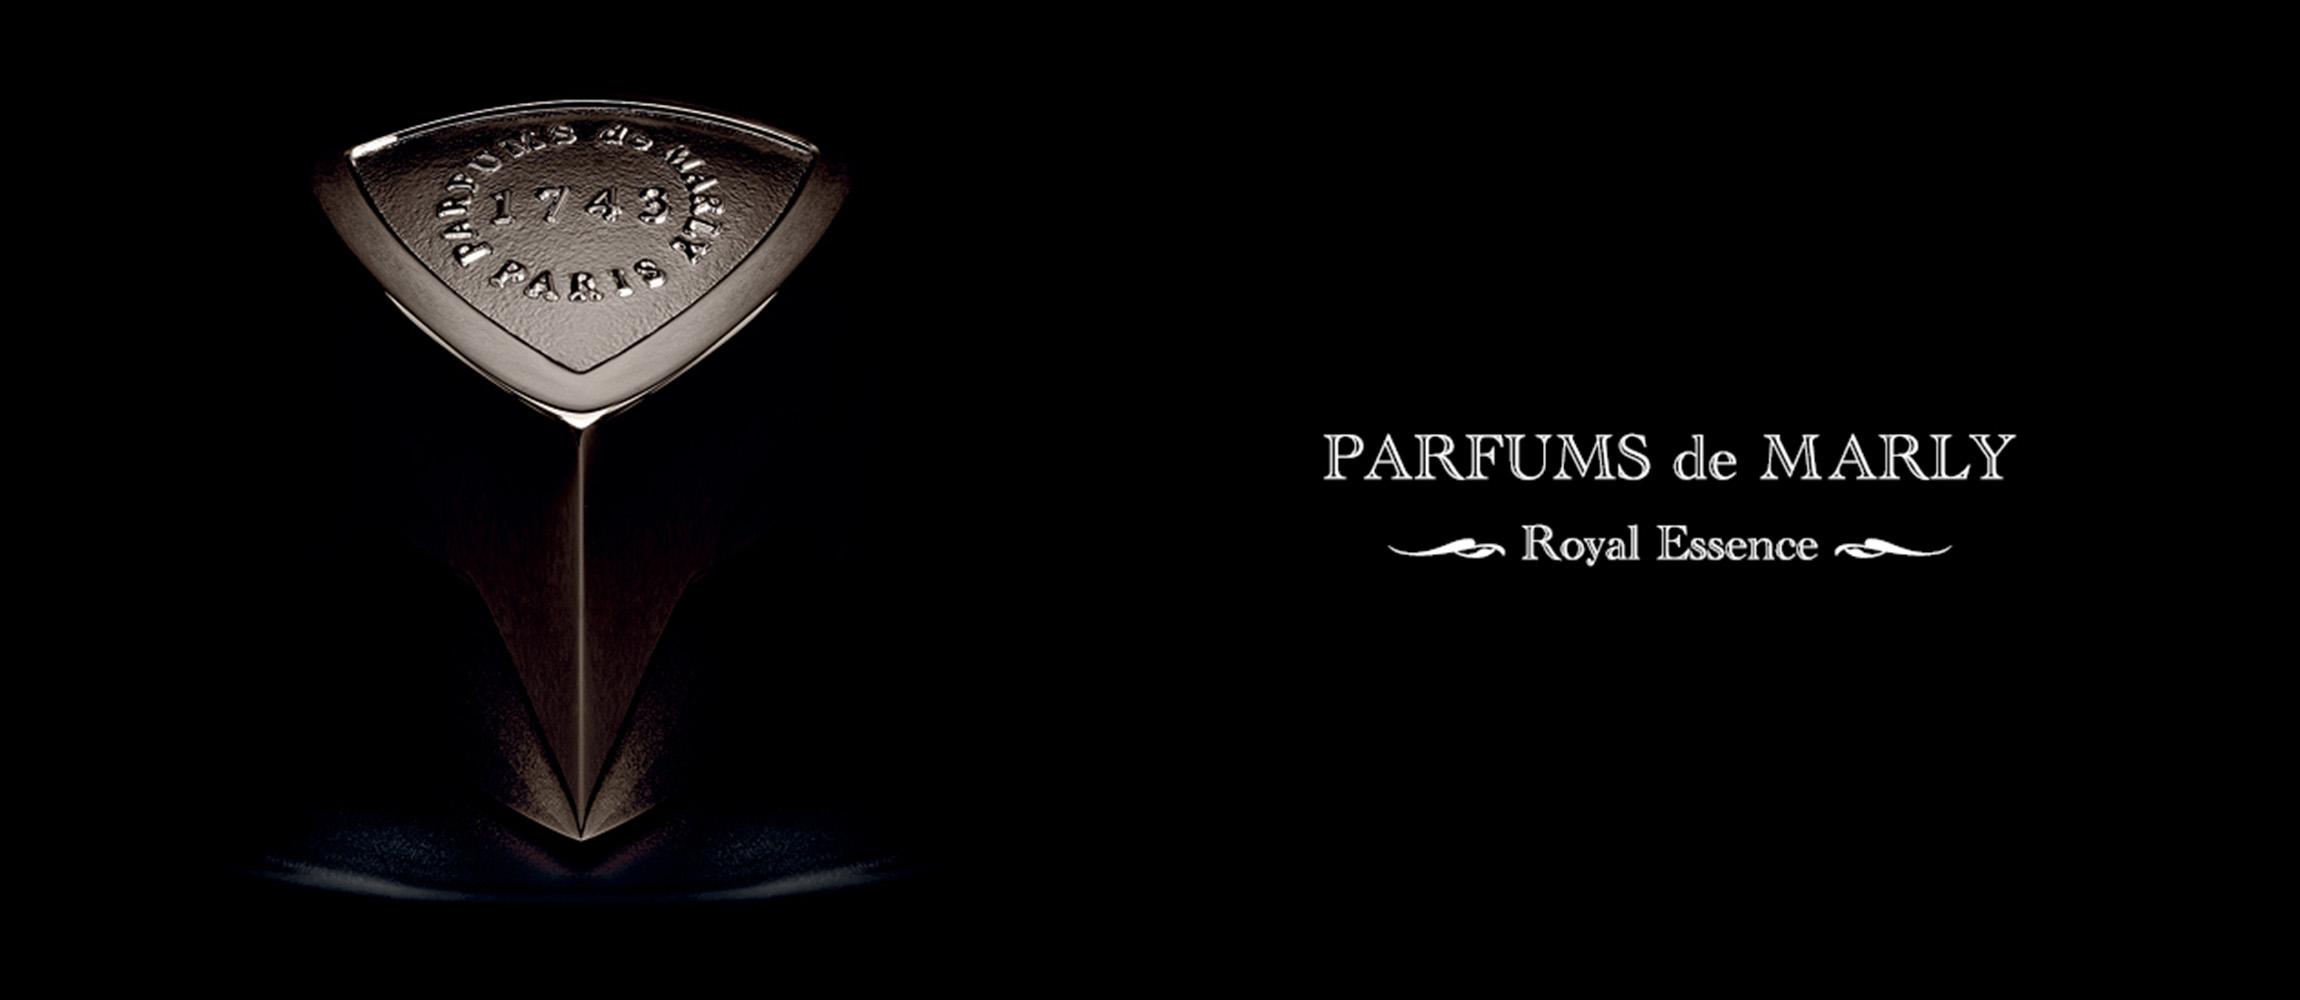 Parfums de Marly, parfume